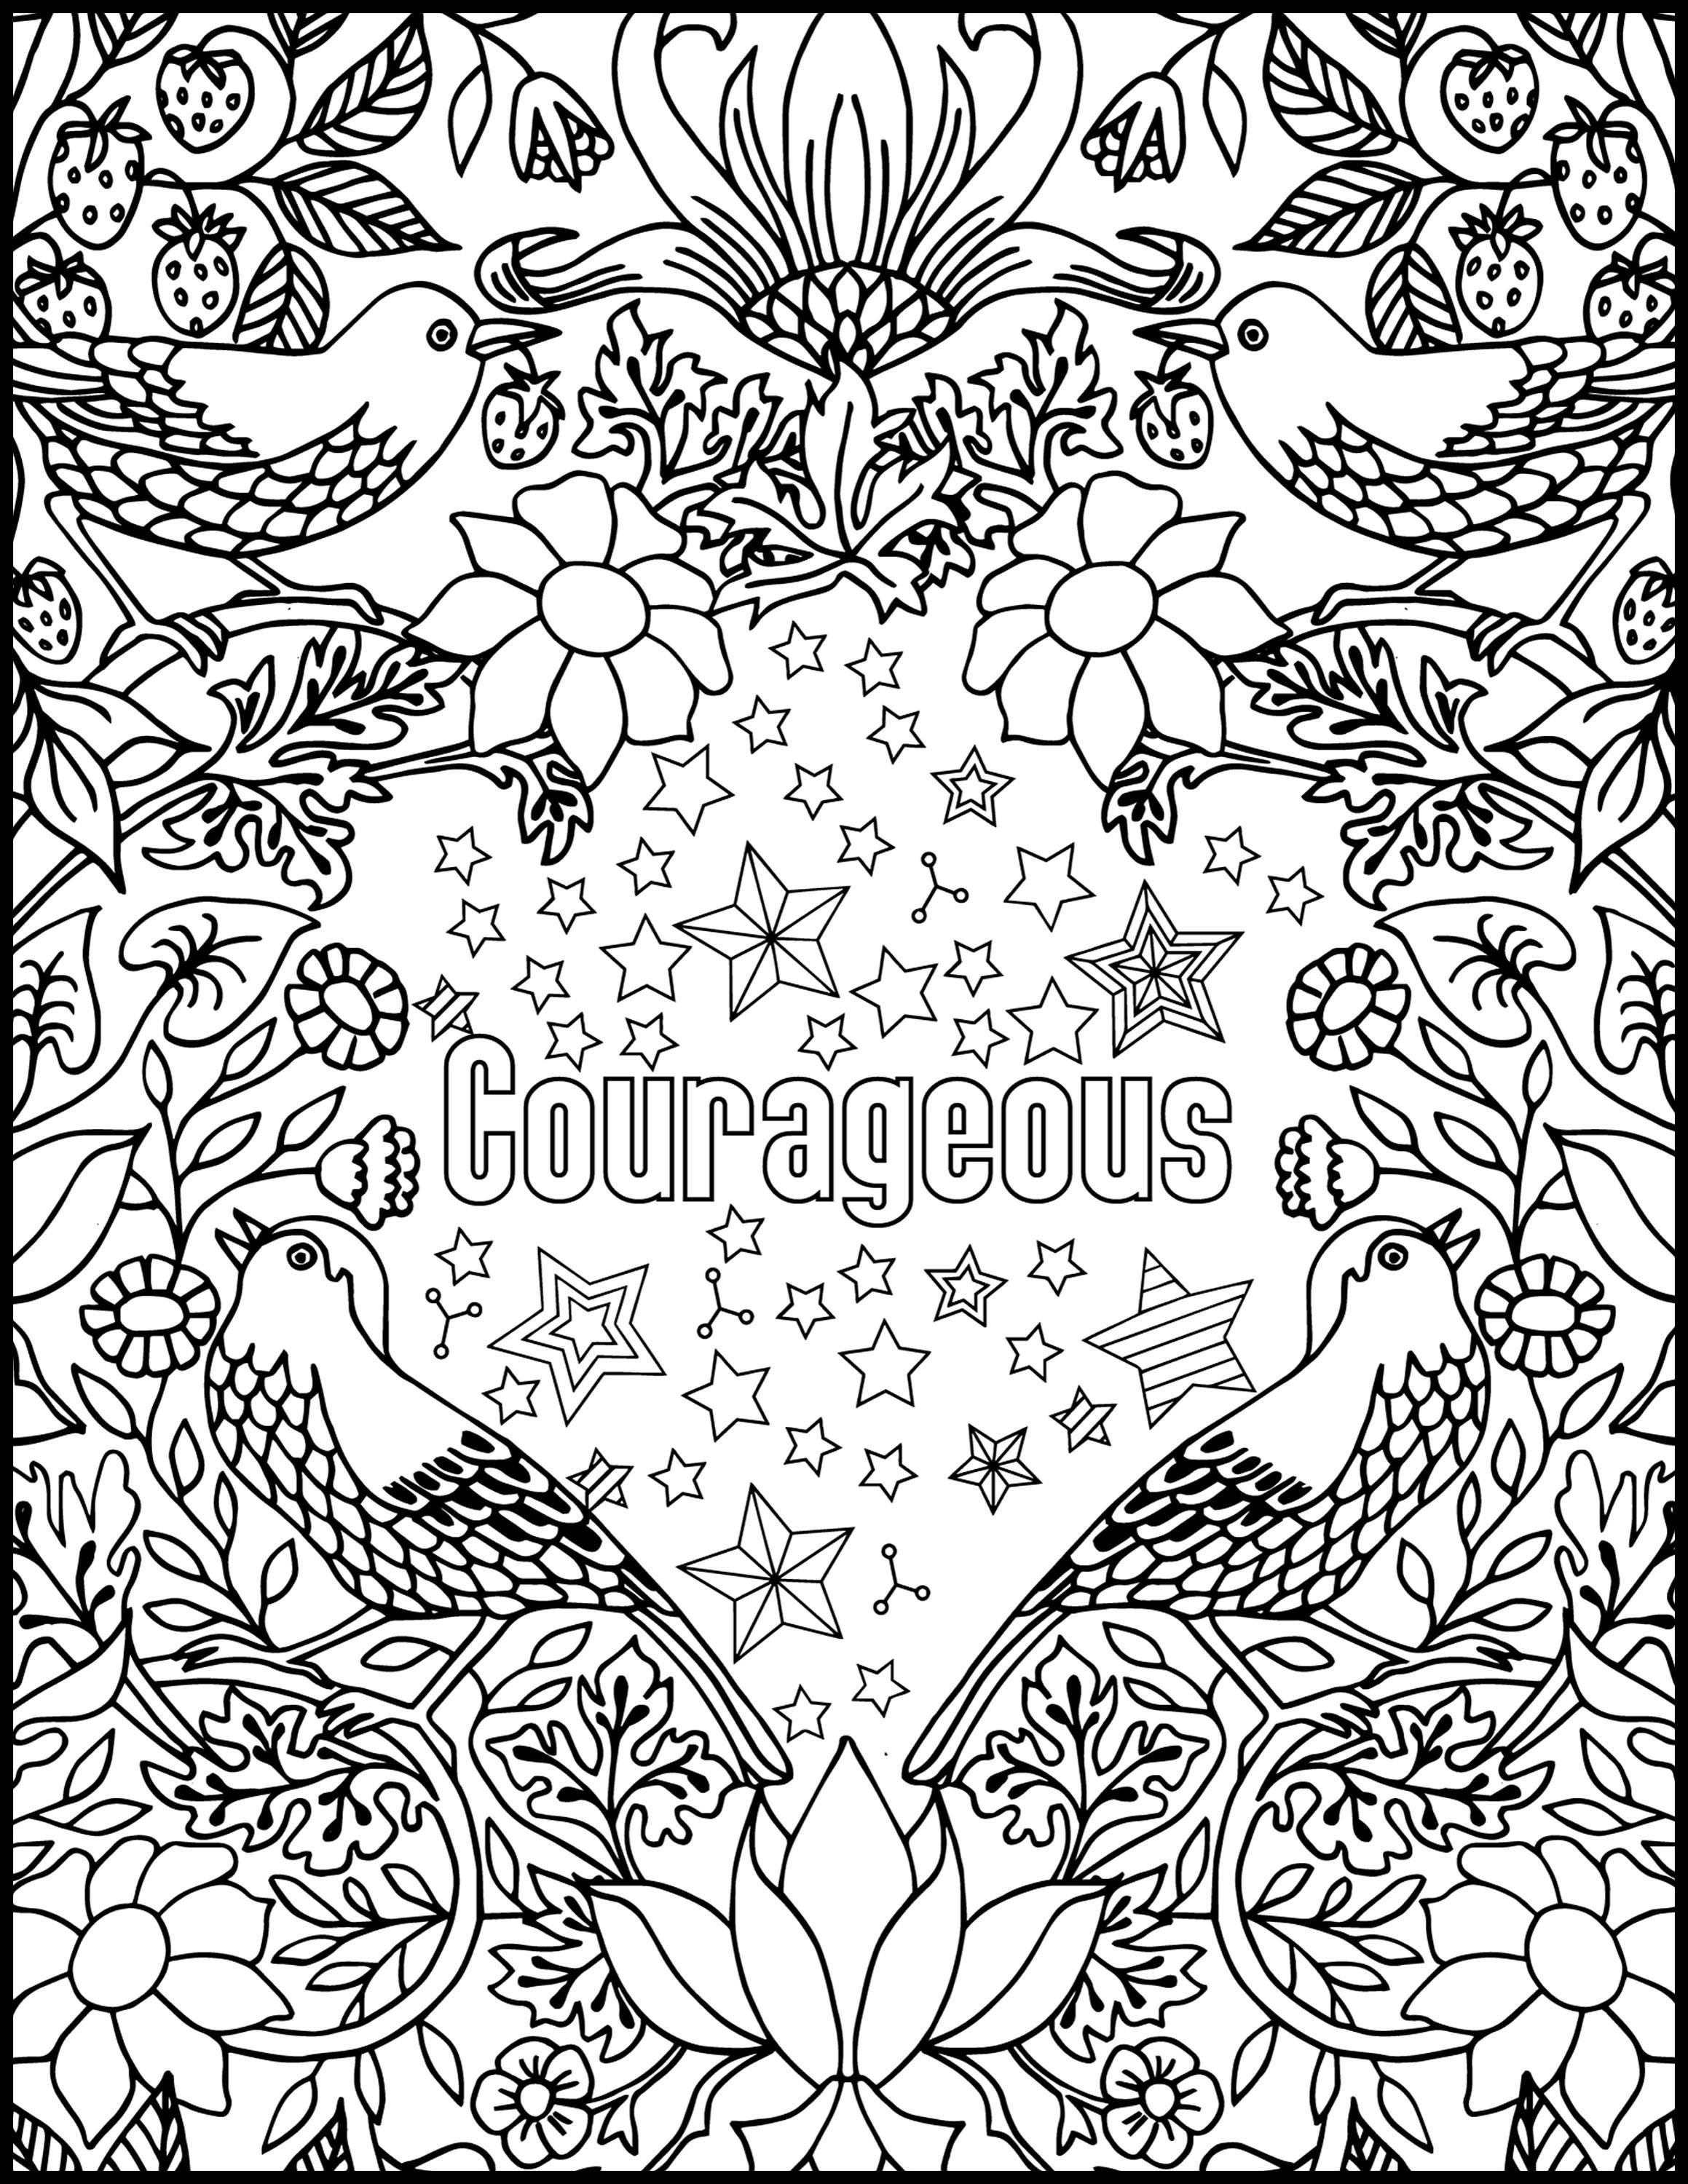 Inspirational Quotes Coloring Pages Best Of Courageous Positive Word Coloring Book Printable Col Words Coloring Book Coloring Book Set Swear Word Coloring Book